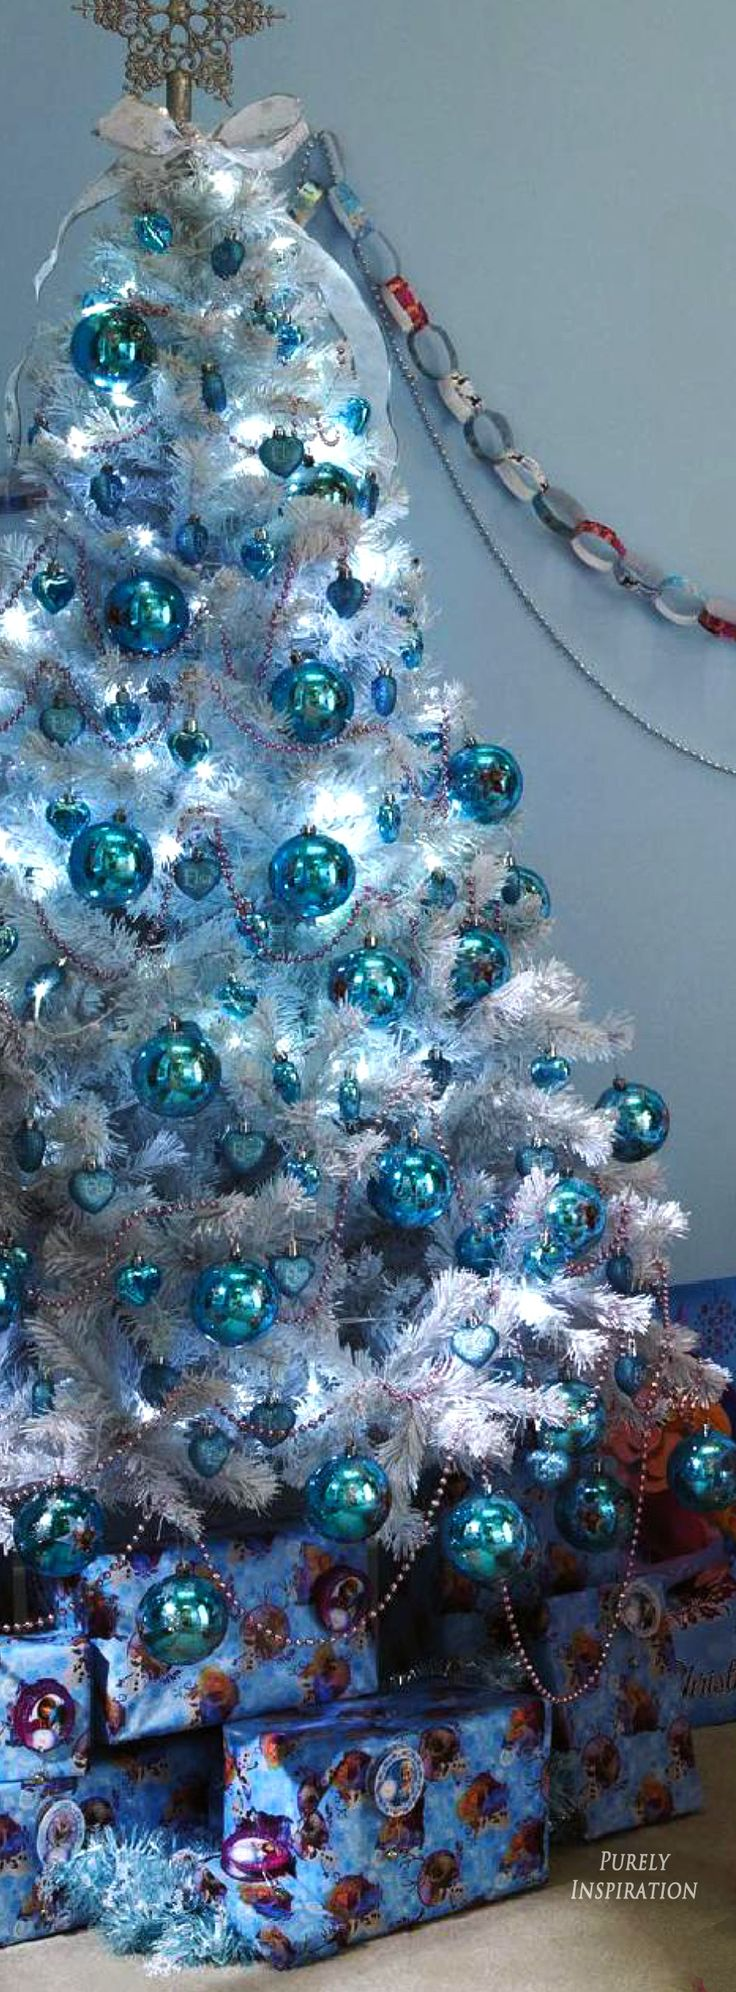 Christmas is Coming | Blue Christmas | Purely Inspiration